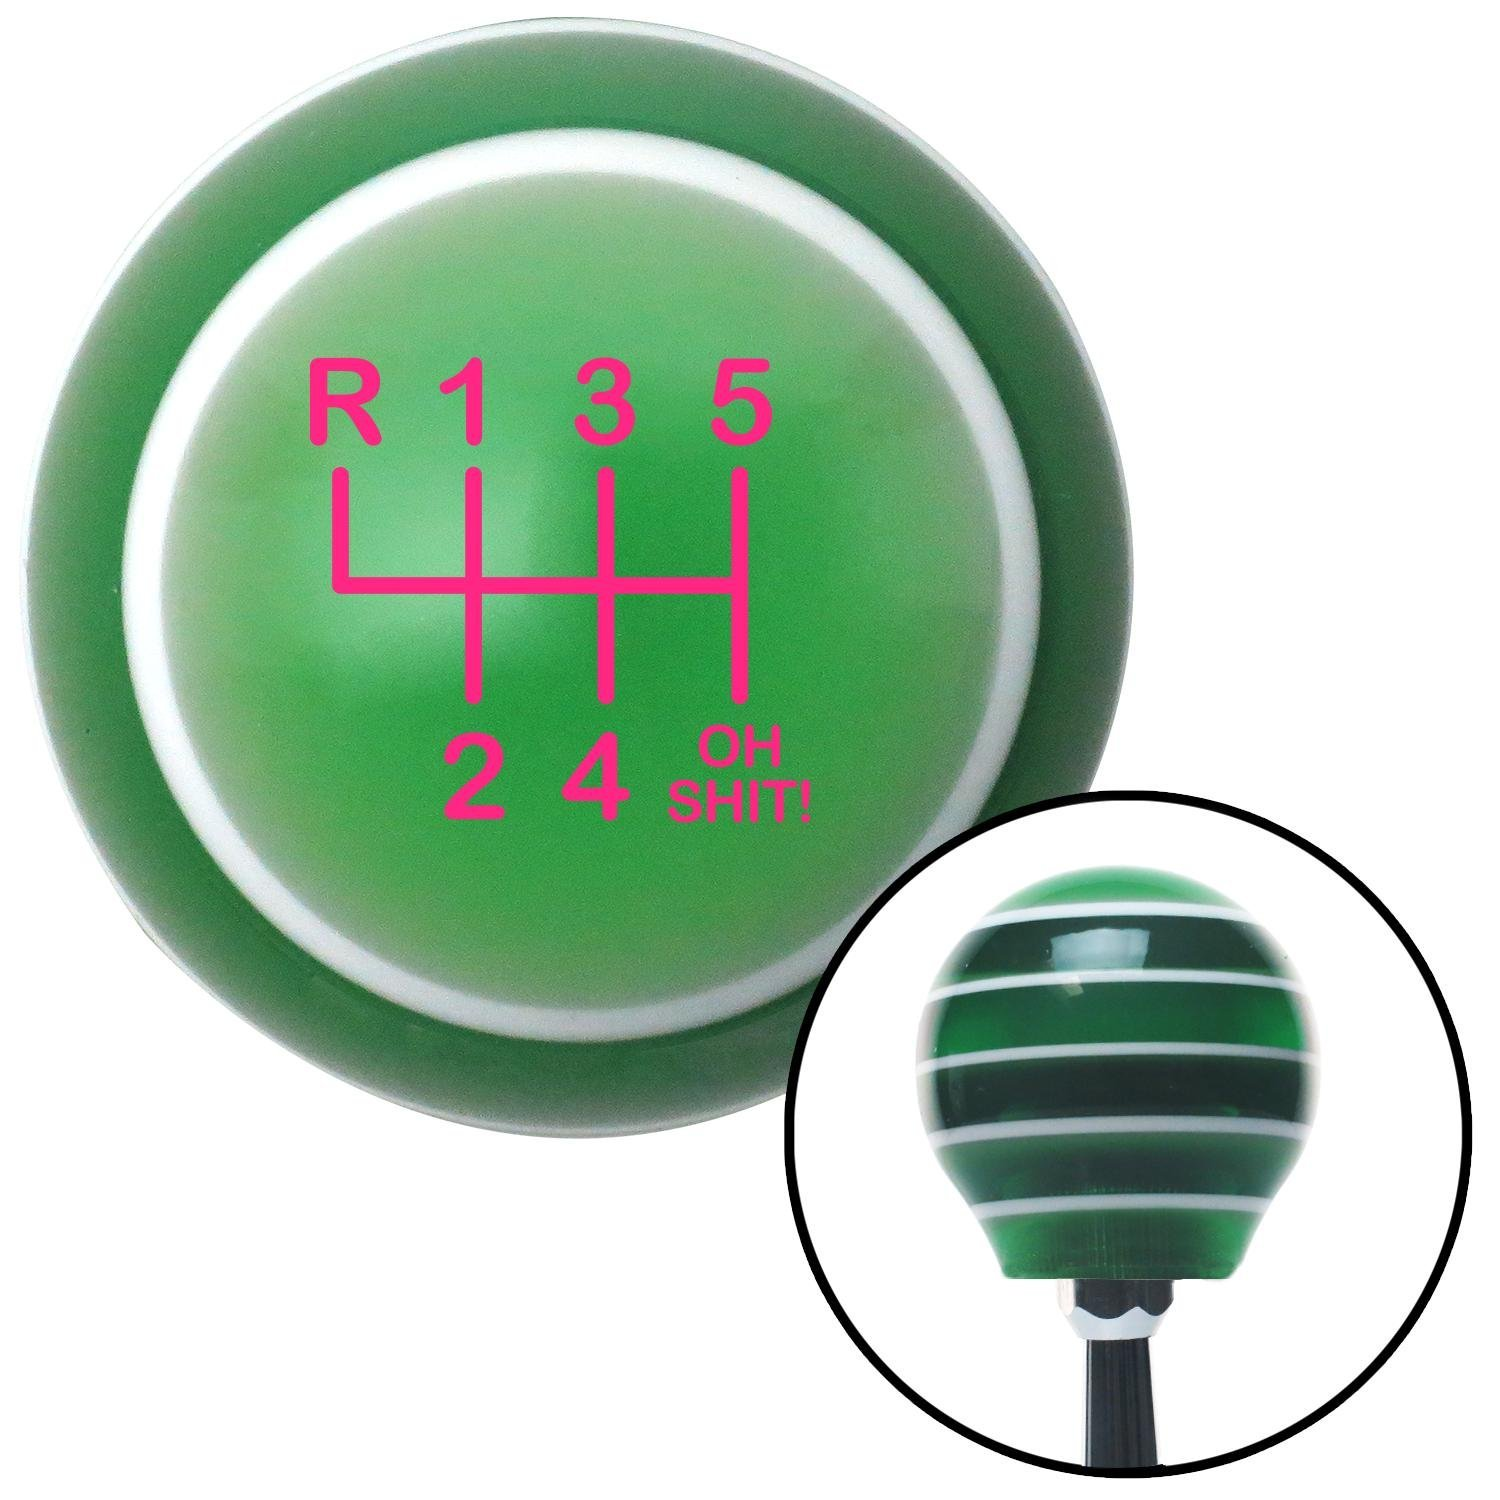 American Shifter 127550 Green Stripe Shift Knob with M16 x 1.5 Insert Pink Shift Pattern OS20n